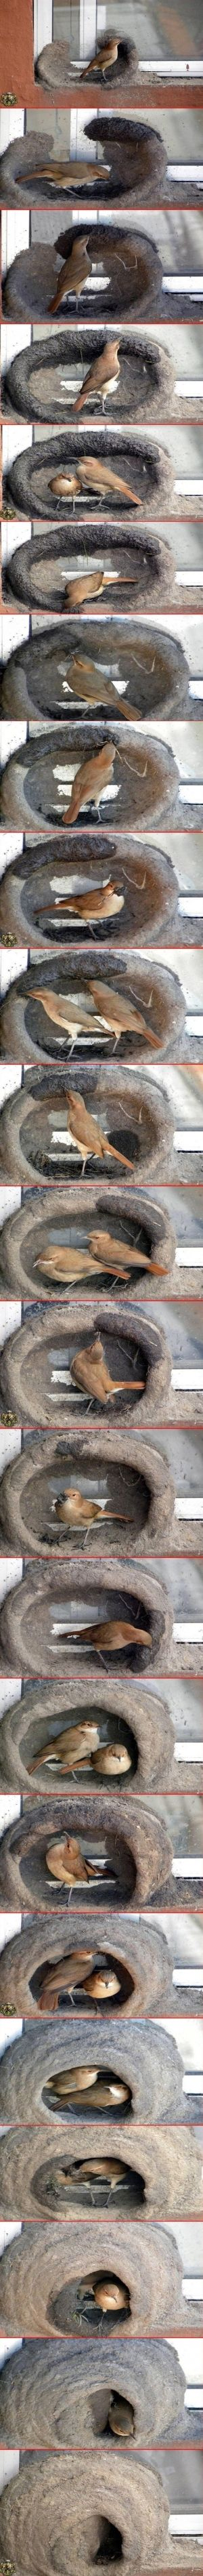 """El hornero (meaning """"oven maker""""/ """"baker"""" in Spanish) or  Furnarius can be found in Brasil, Uruguay, Paraguay, Bolivia and Argentina. The pair builds a nest made of mud in a shape similar to the old mud ovens. This wonderful sequence was photographed by some very patient person. I have personally seen this birds making their nest when I traveled through South America. by kathy"""